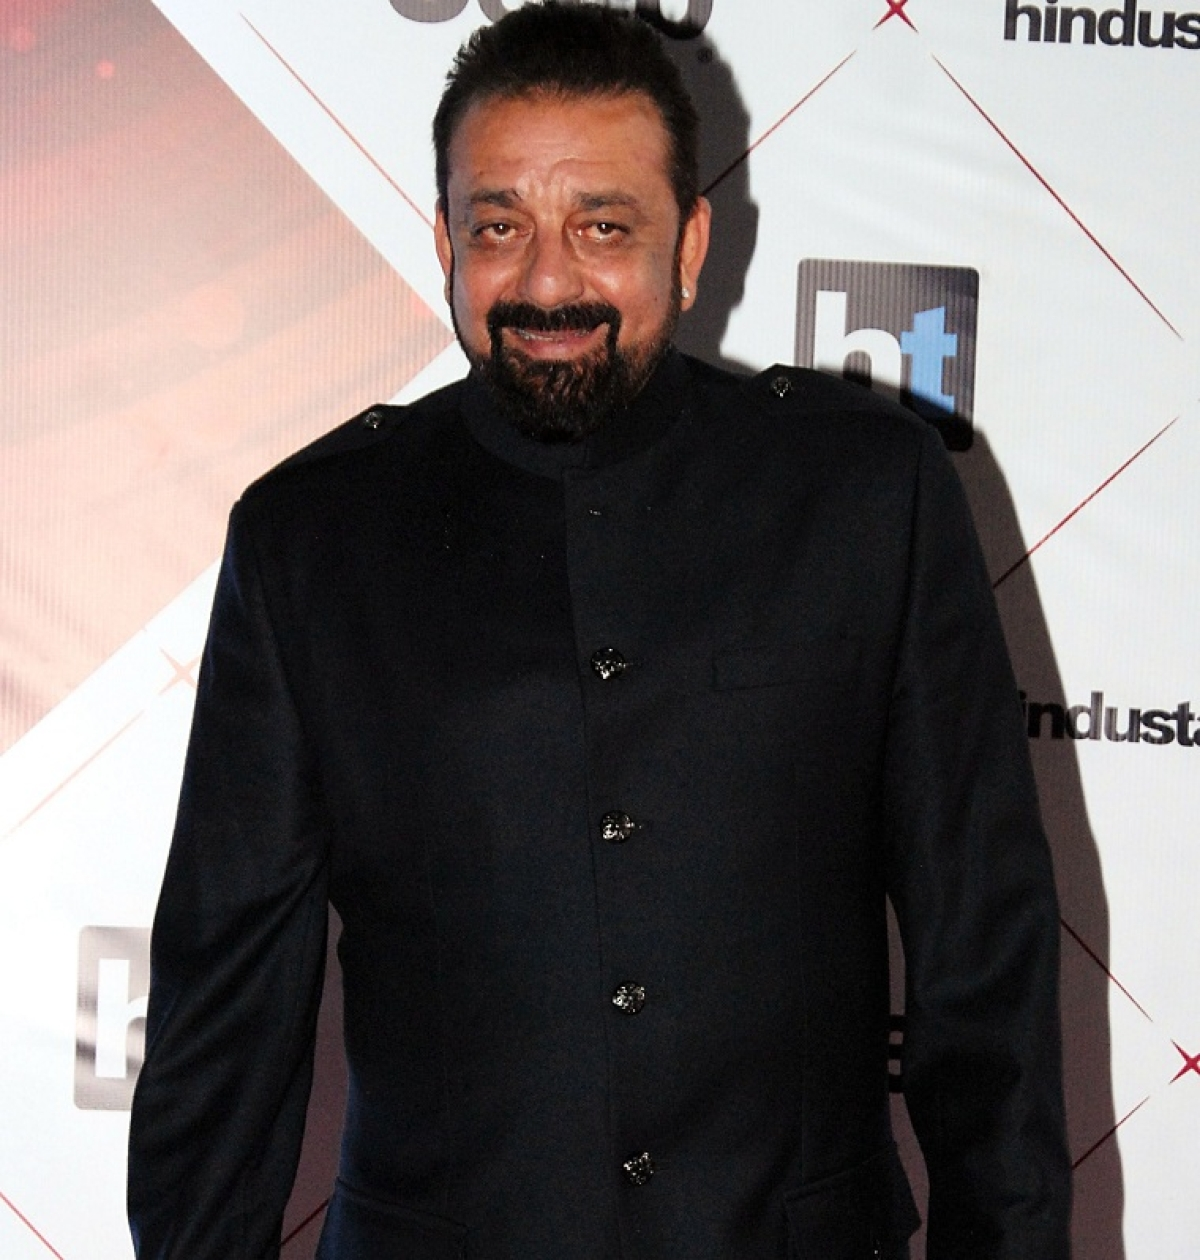 Sanjay Dutt was recently diagnosed with lung cancer